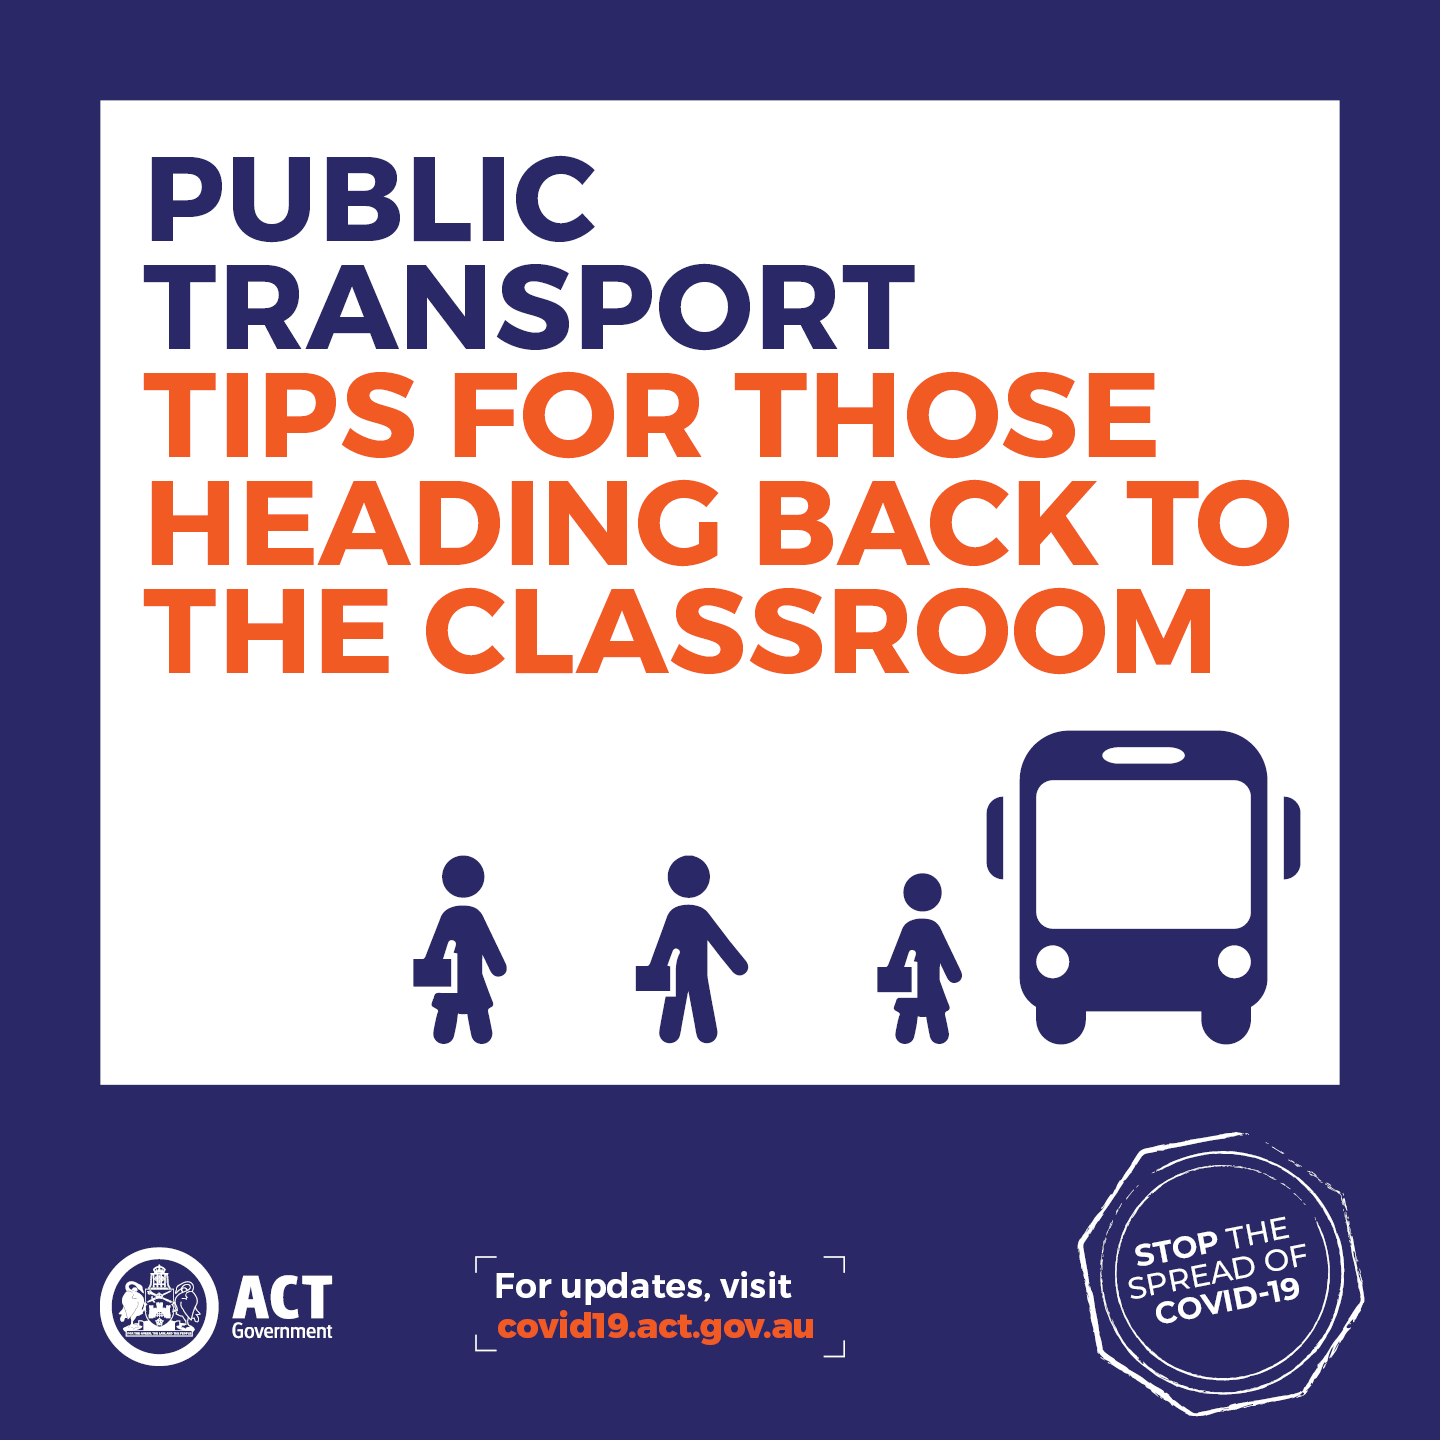 Public transport tips for those heading back to the classroom